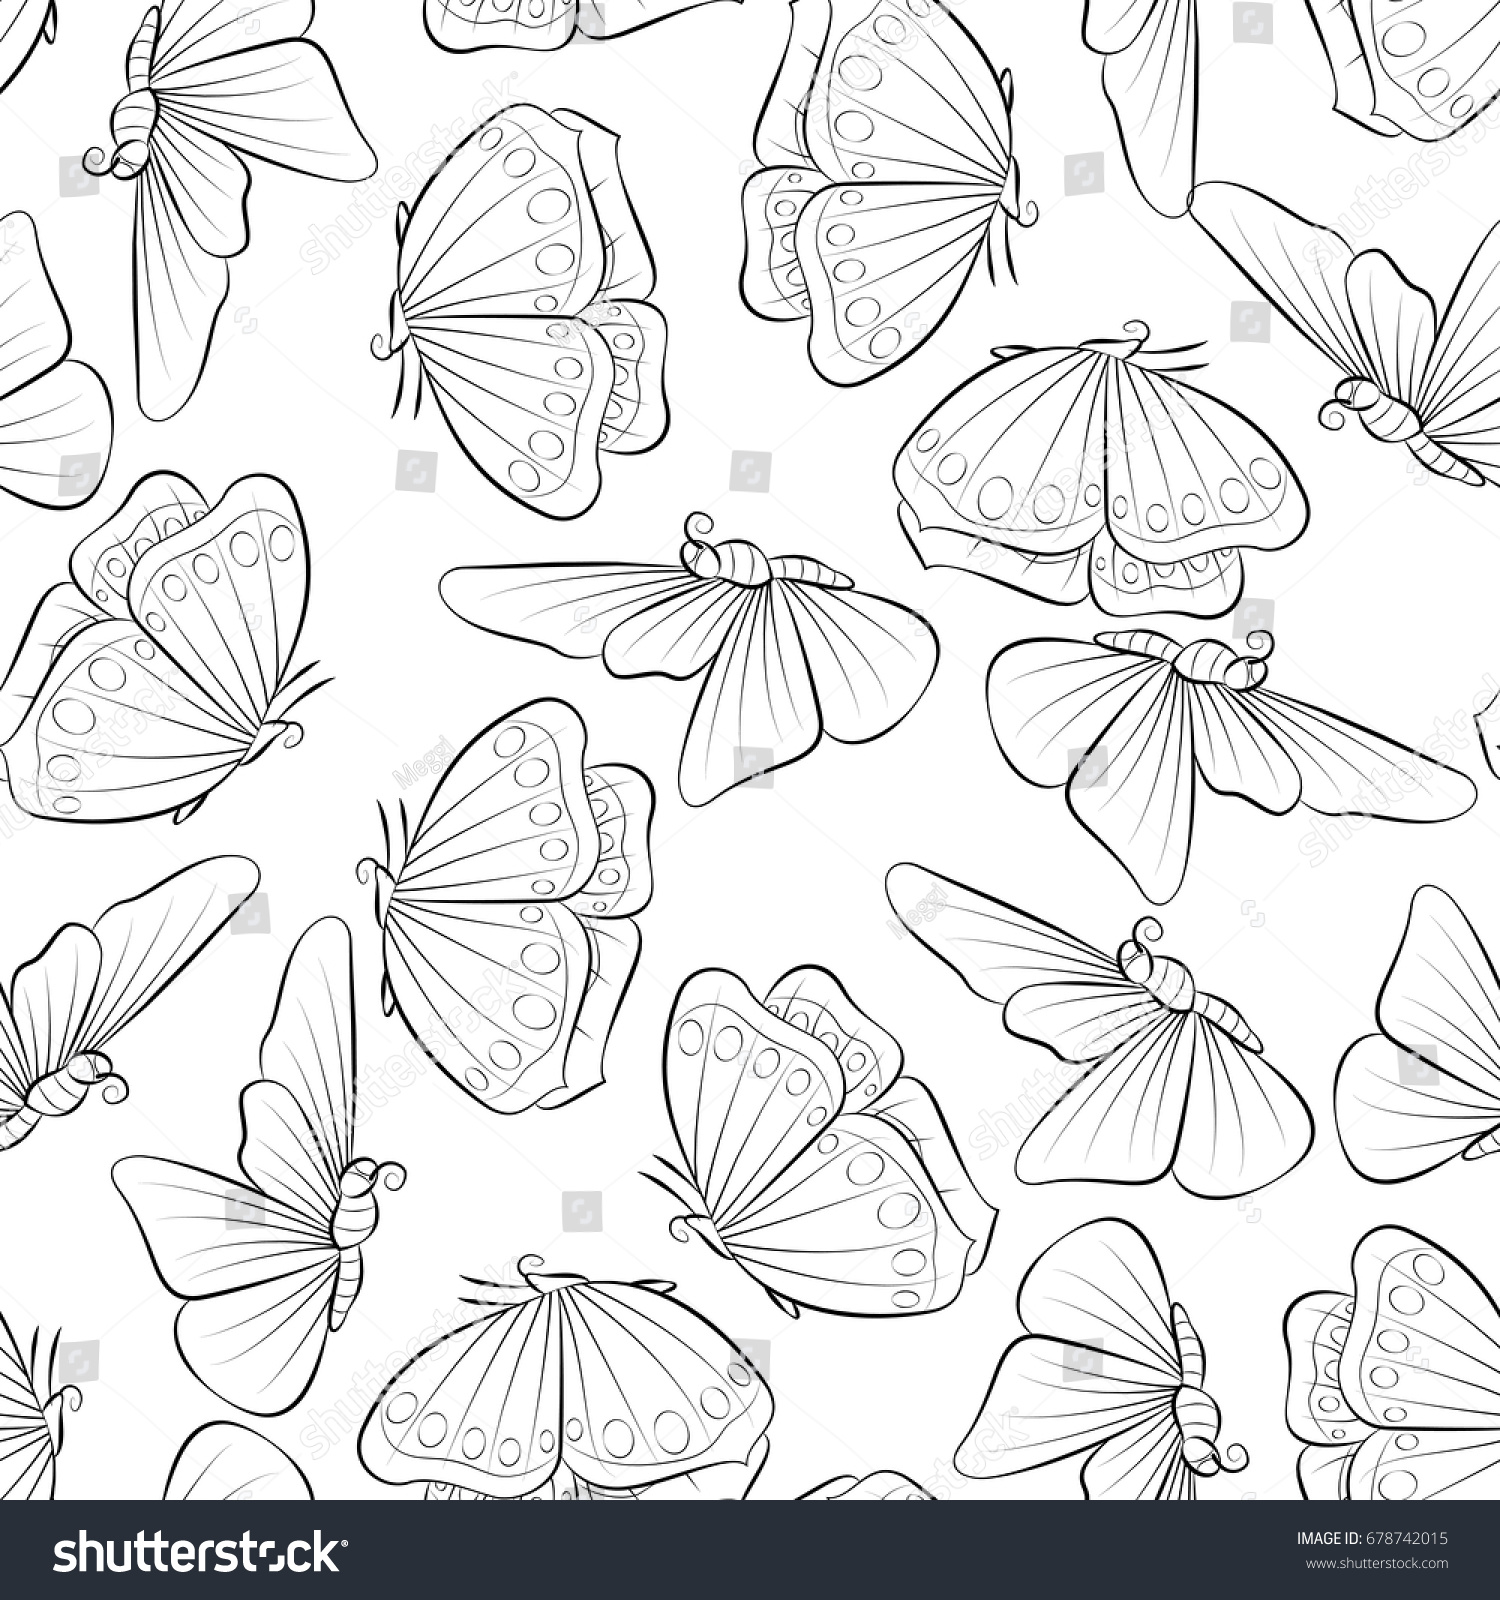 Flight Of The Butterfly Coloring Book Seamless Pattern Background With Insect Vector Illustration